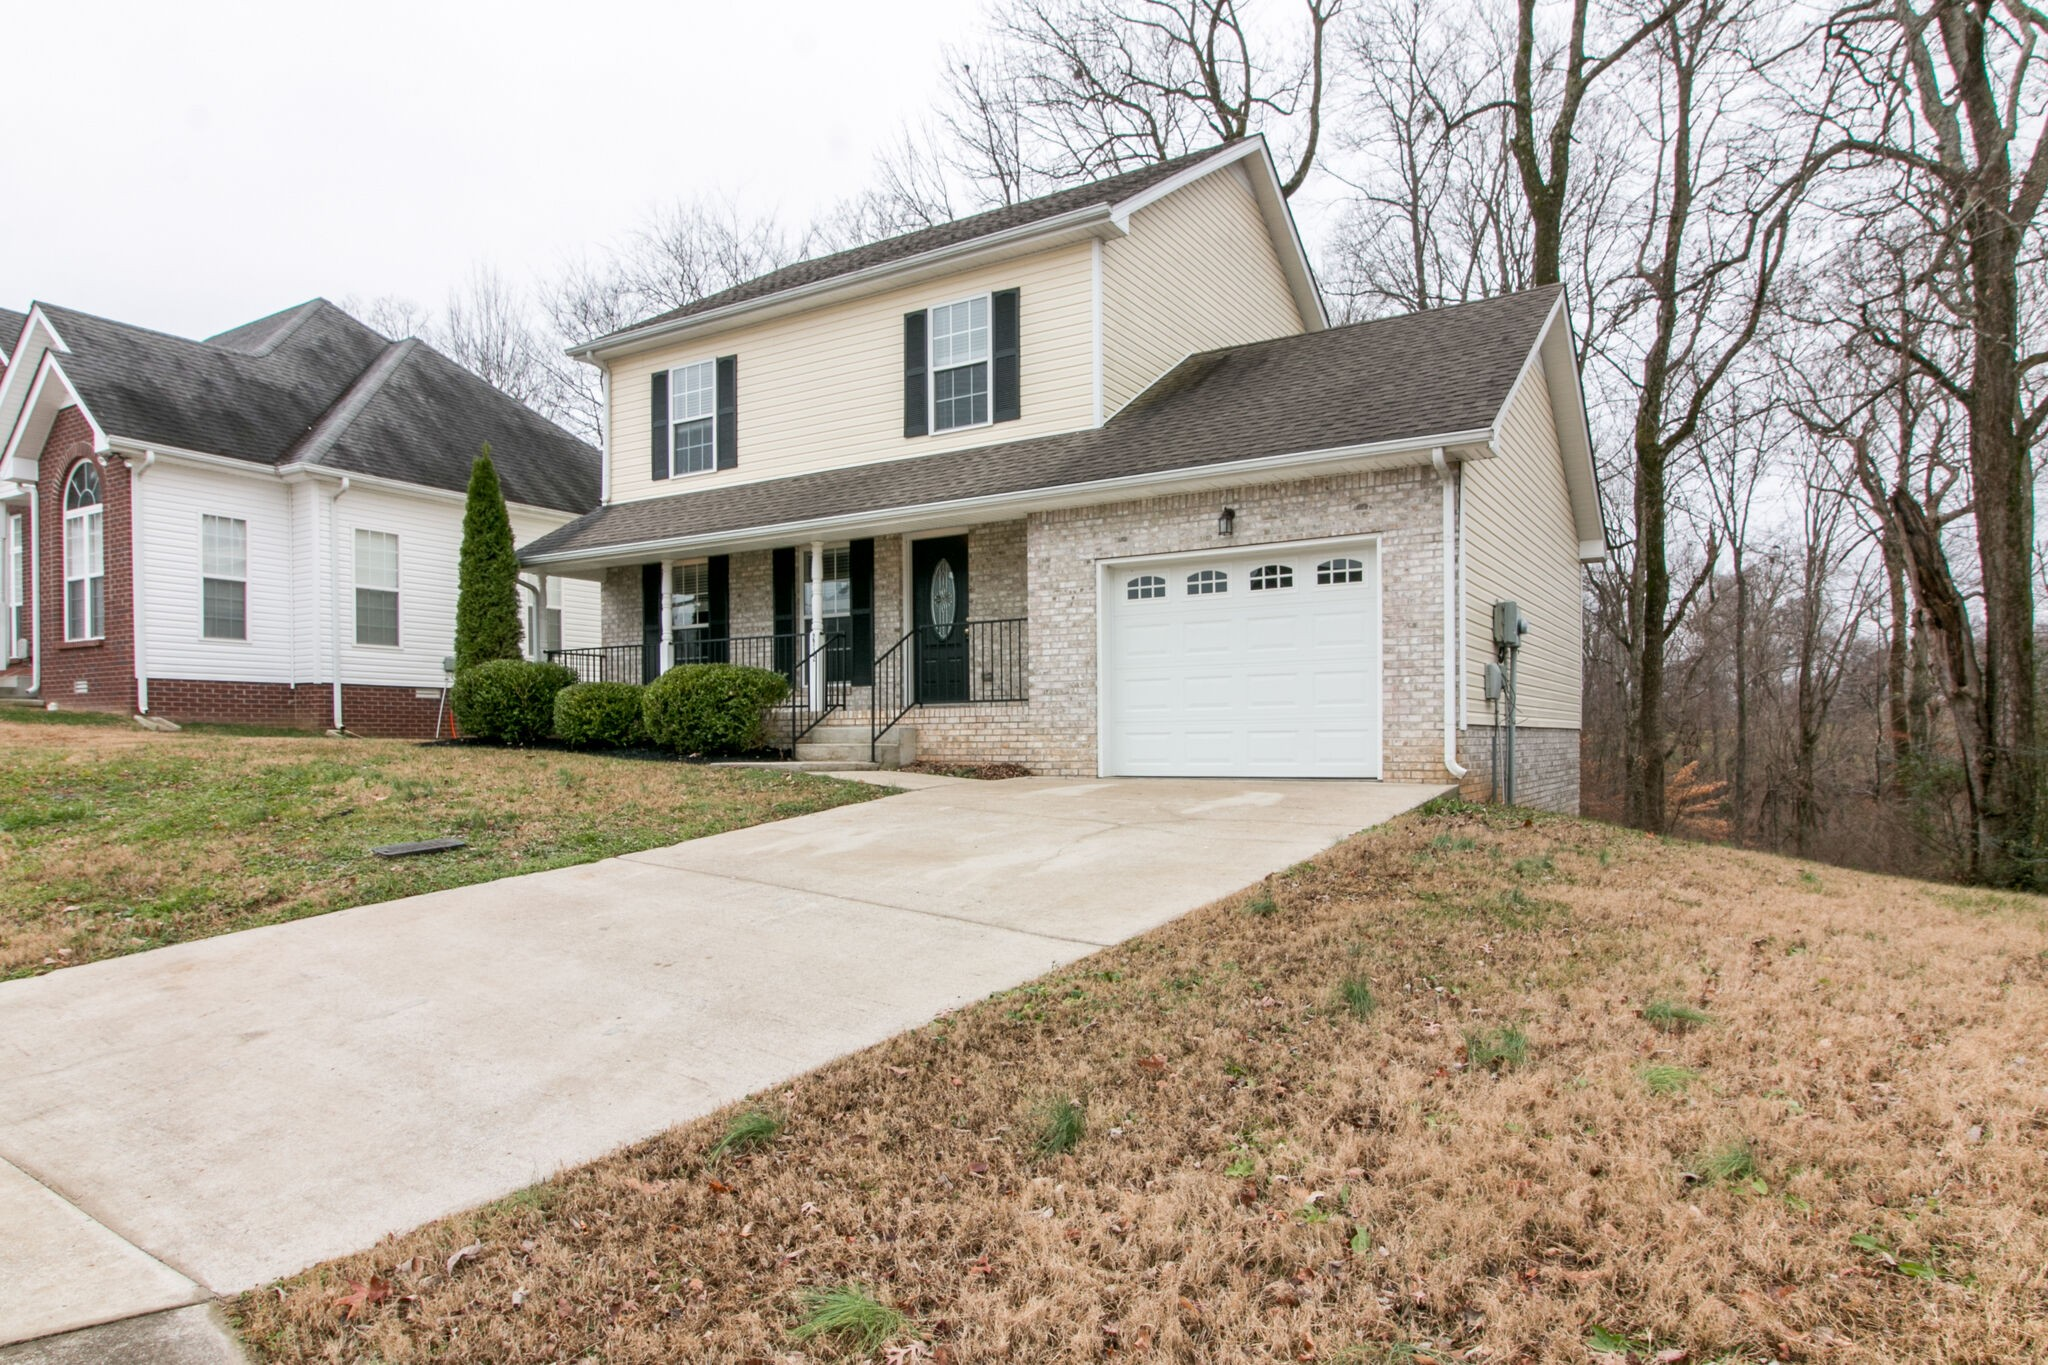 2712 Arthurs Ct Property Photo - Clarksville, TN real estate listing